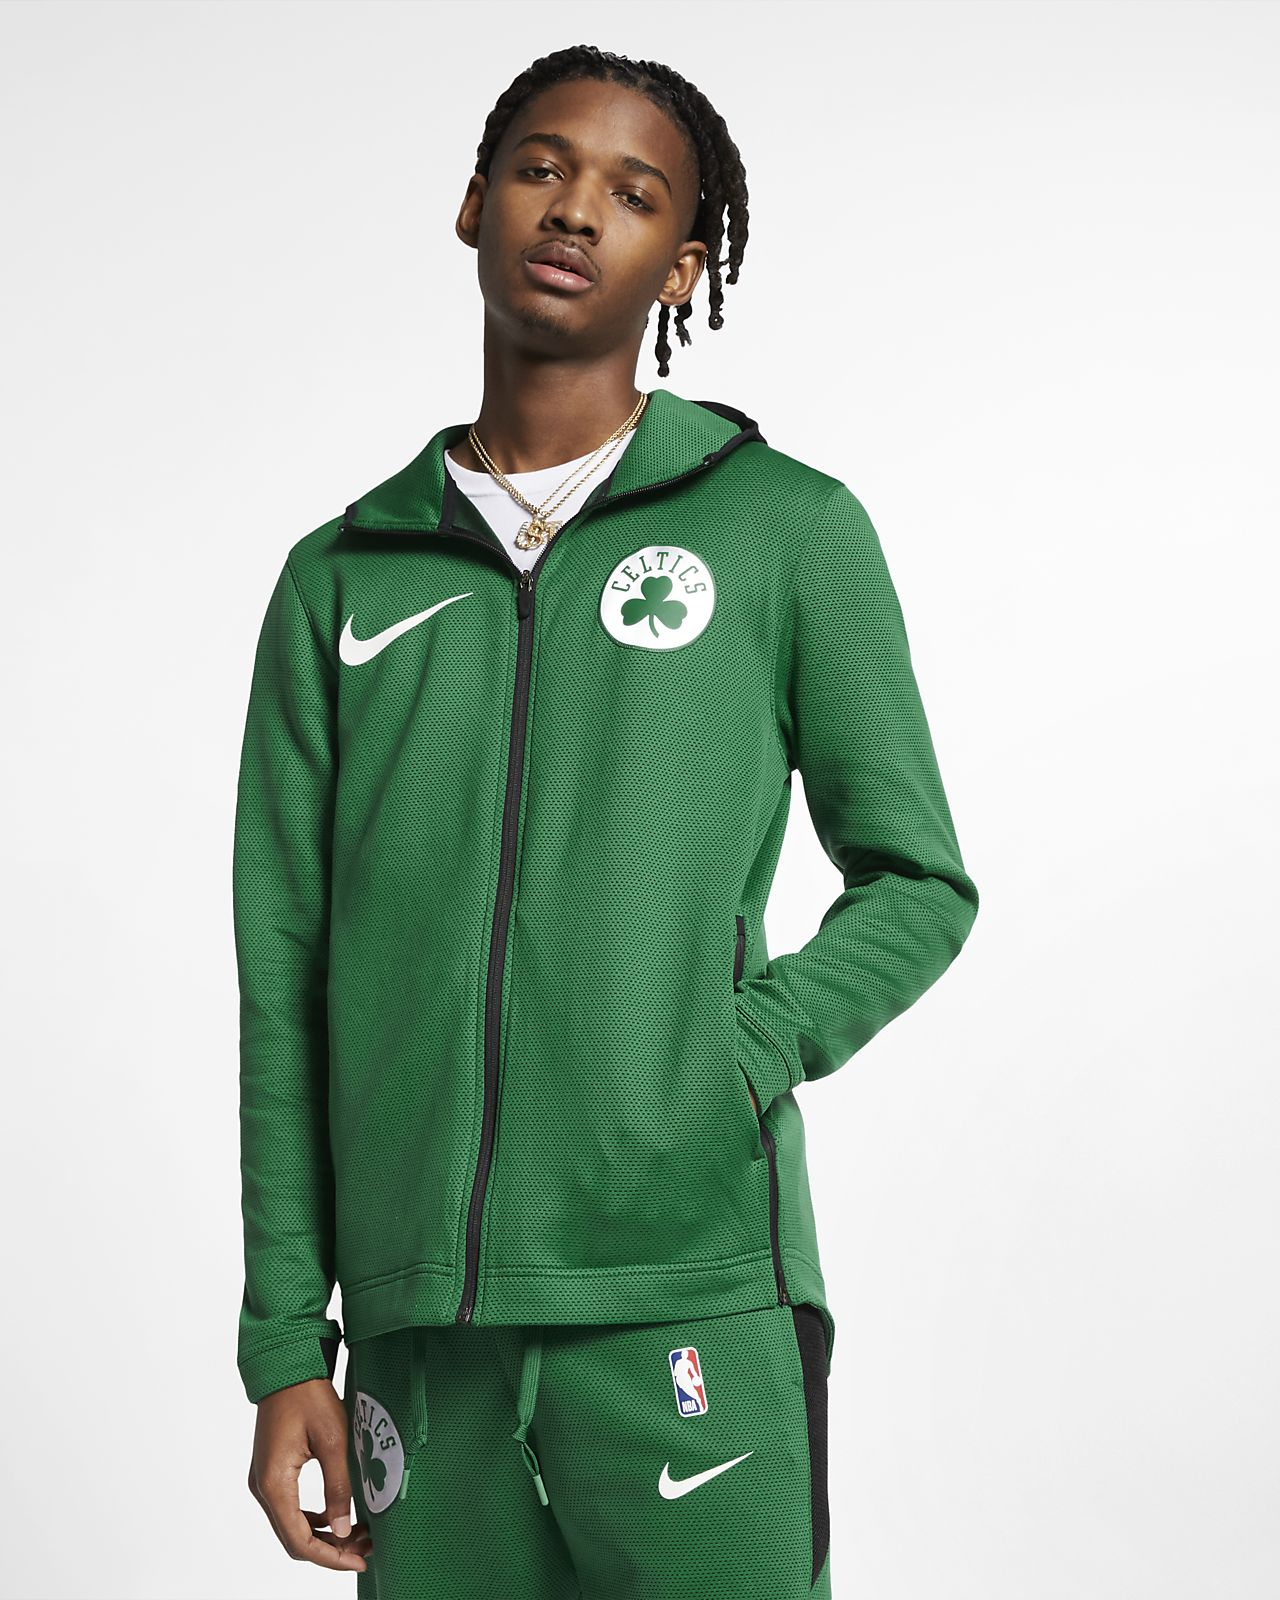 ce3feb242ca Boston Celtics Nike Therma Flex Showtime Men s NBA Hoodie. Nike.com CA